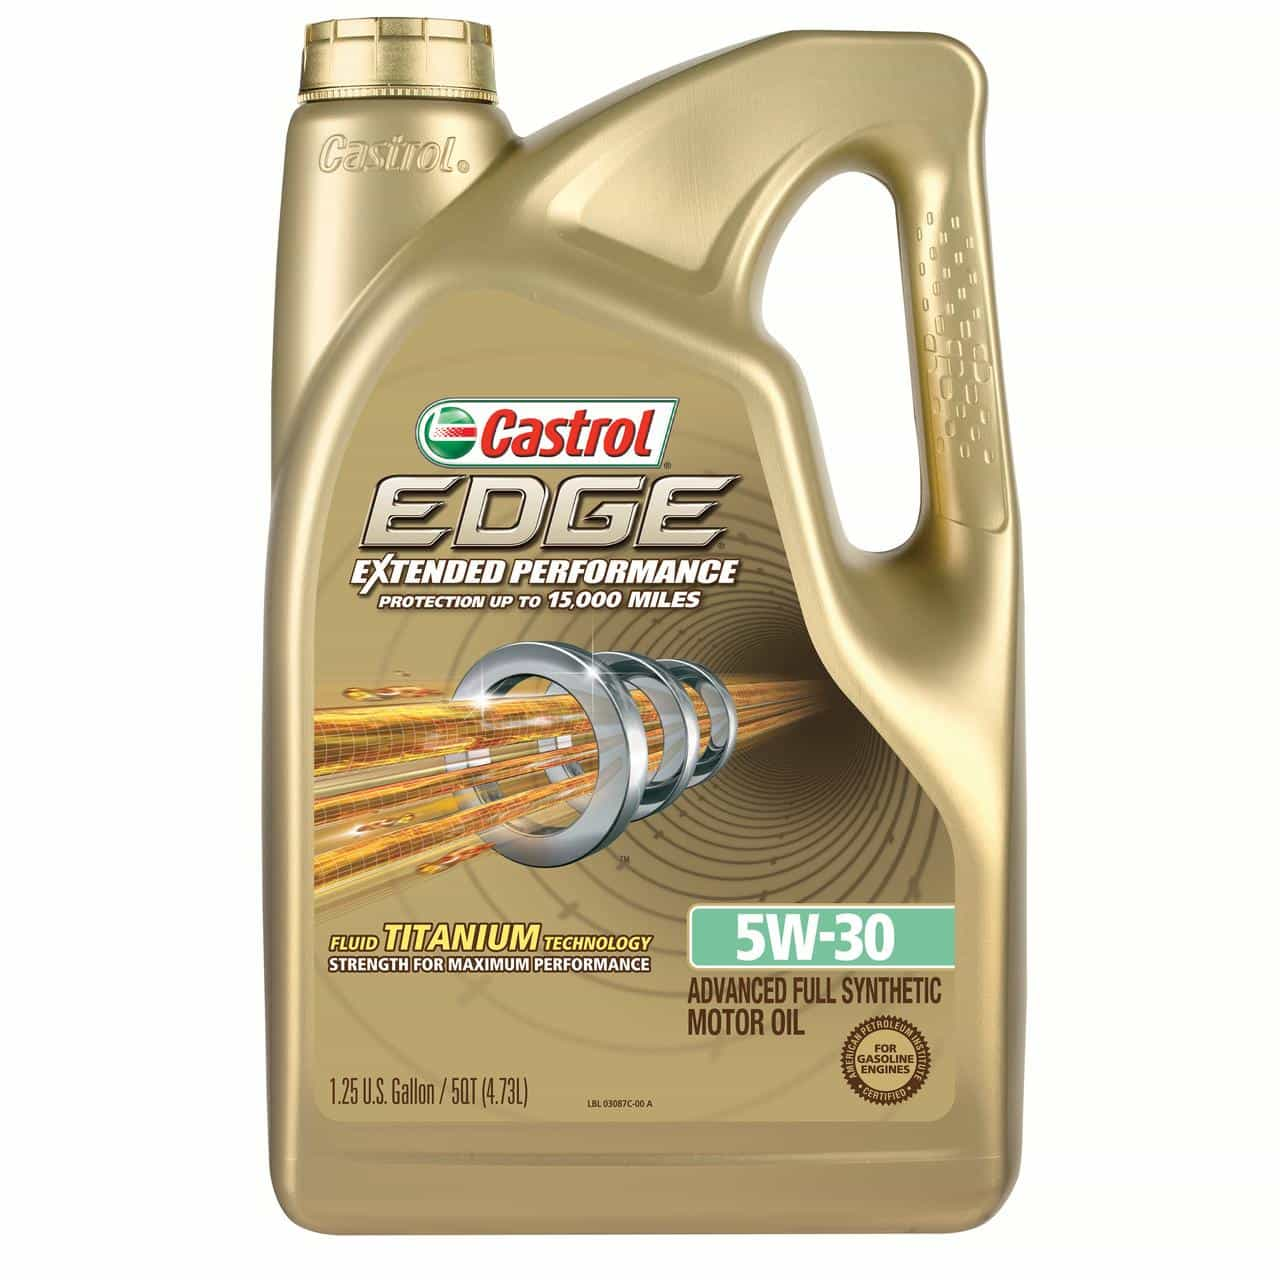 Best Synthetic Motor Oil For High Mileage Vehicles